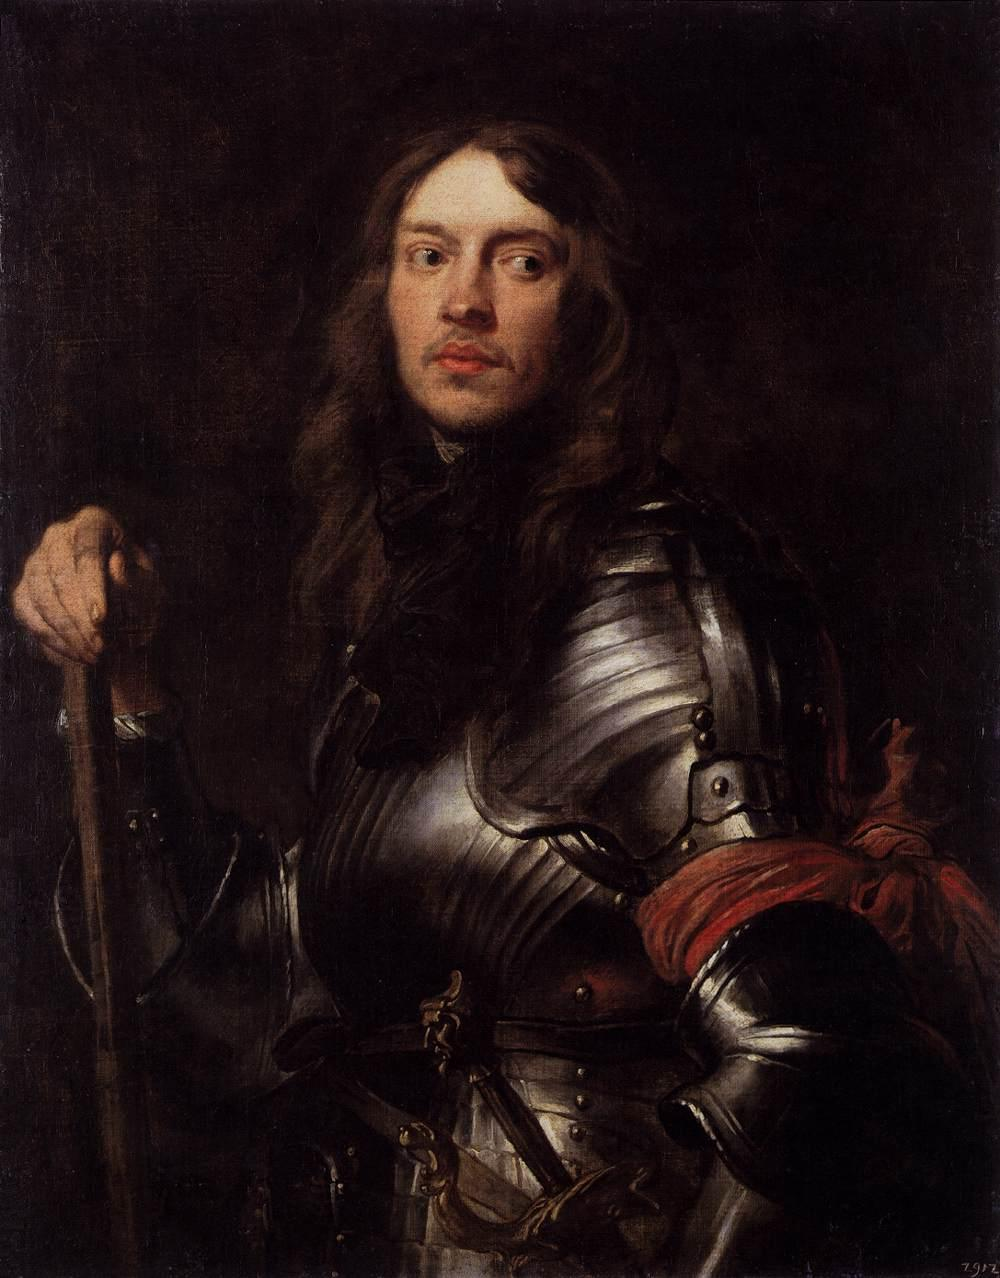 Portrait of a Man in Armour with Red Scarf - Anthony van Dyck